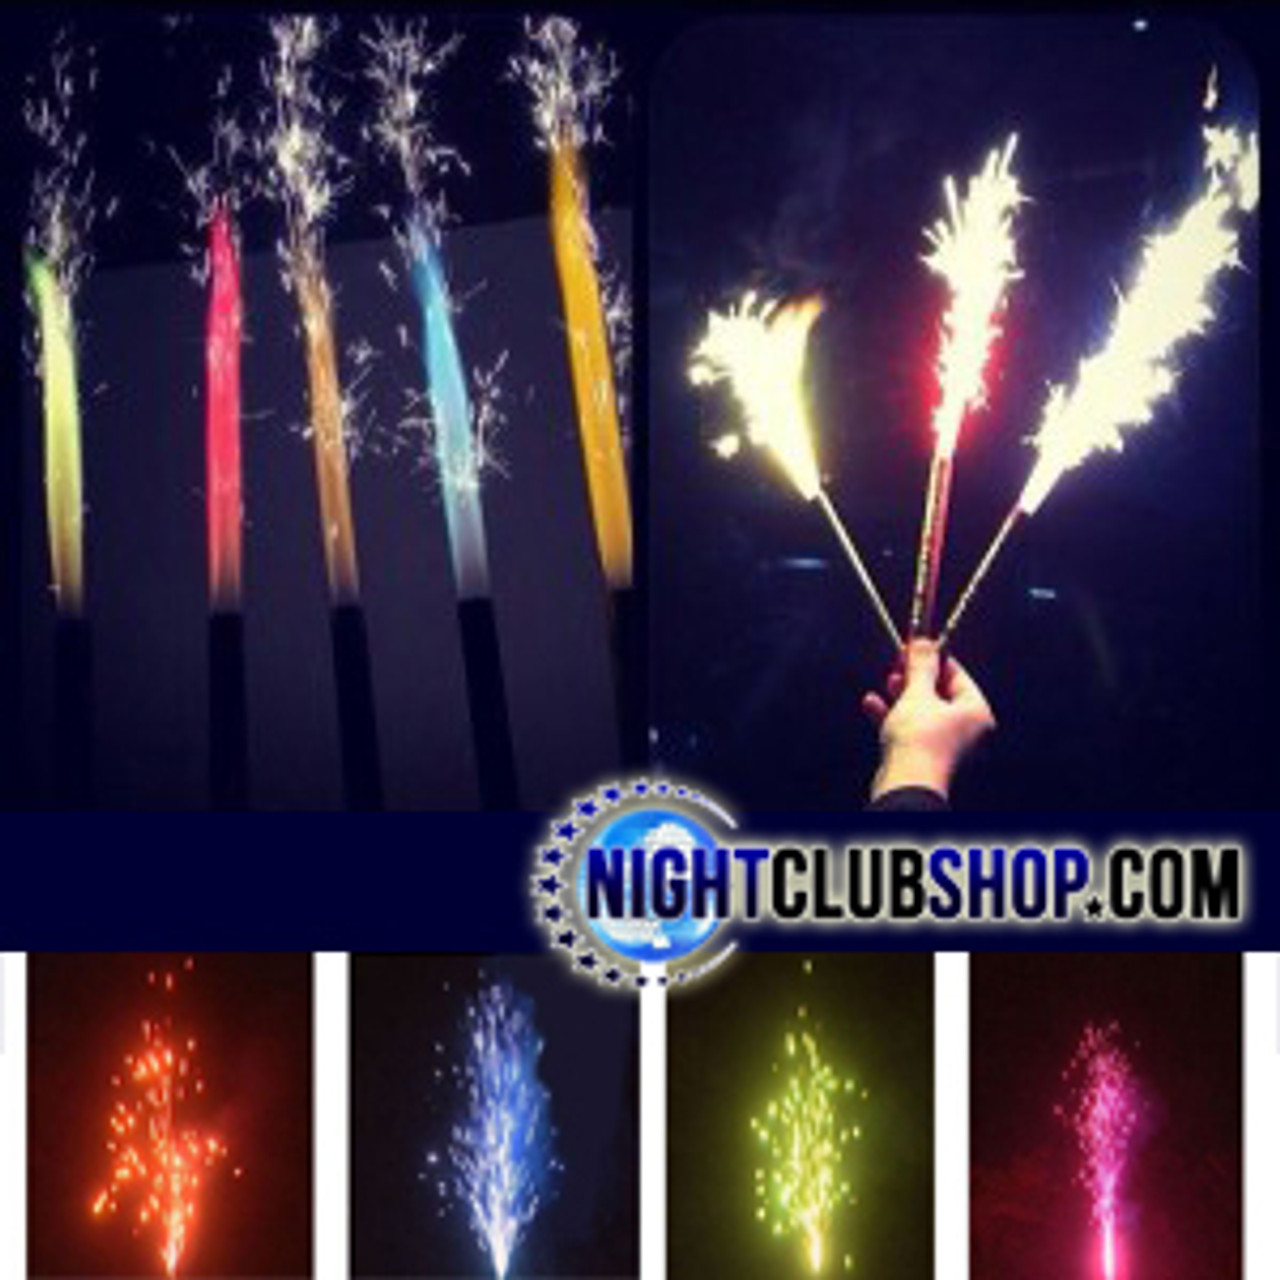 CHAMPAGNE, BOTTLE, SPARKLERS, CLOSEOUT, SALE, BOTTLE SPARKLERS